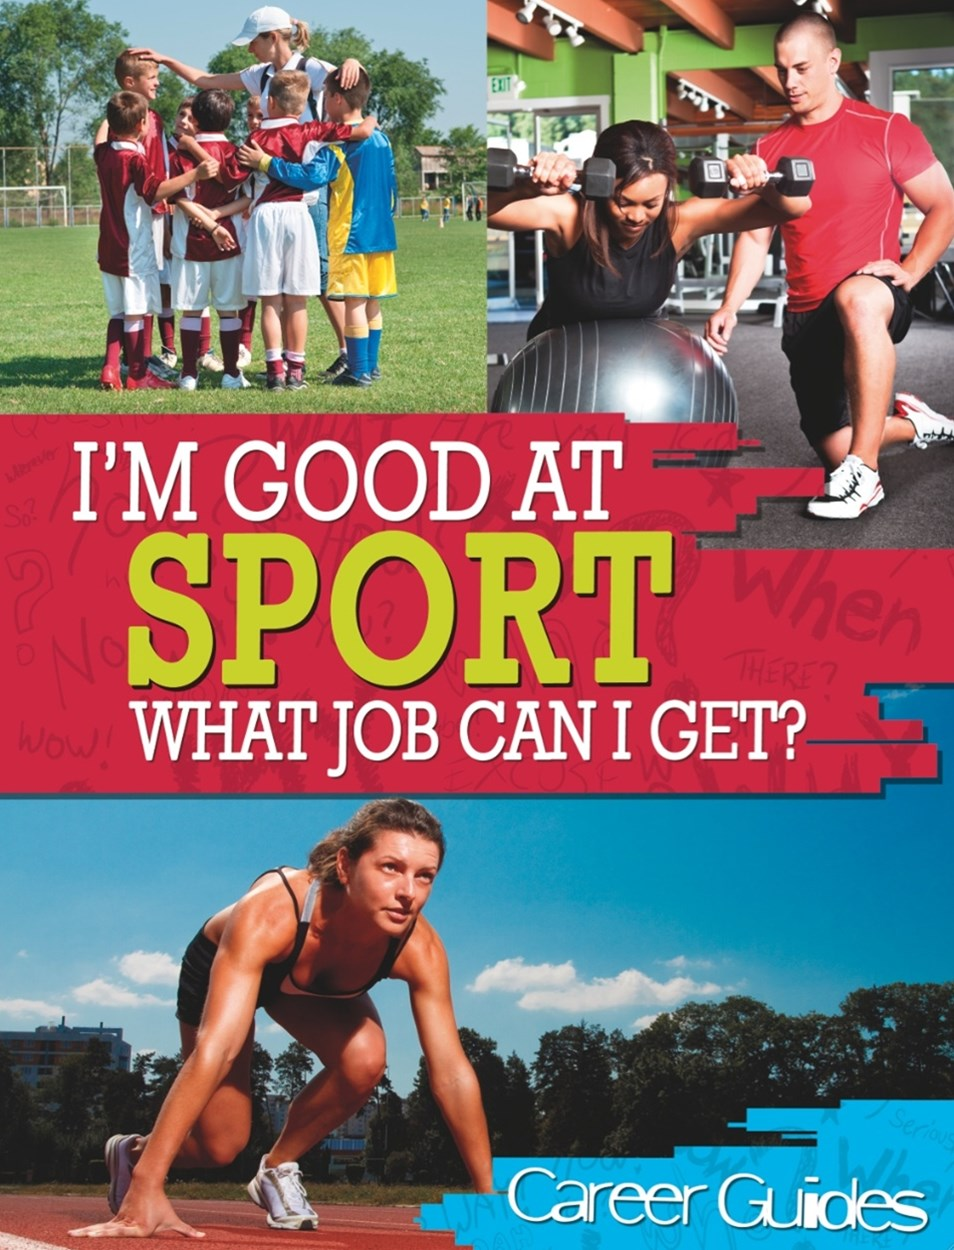 I'm Good At: Sport What Job Can I Get?